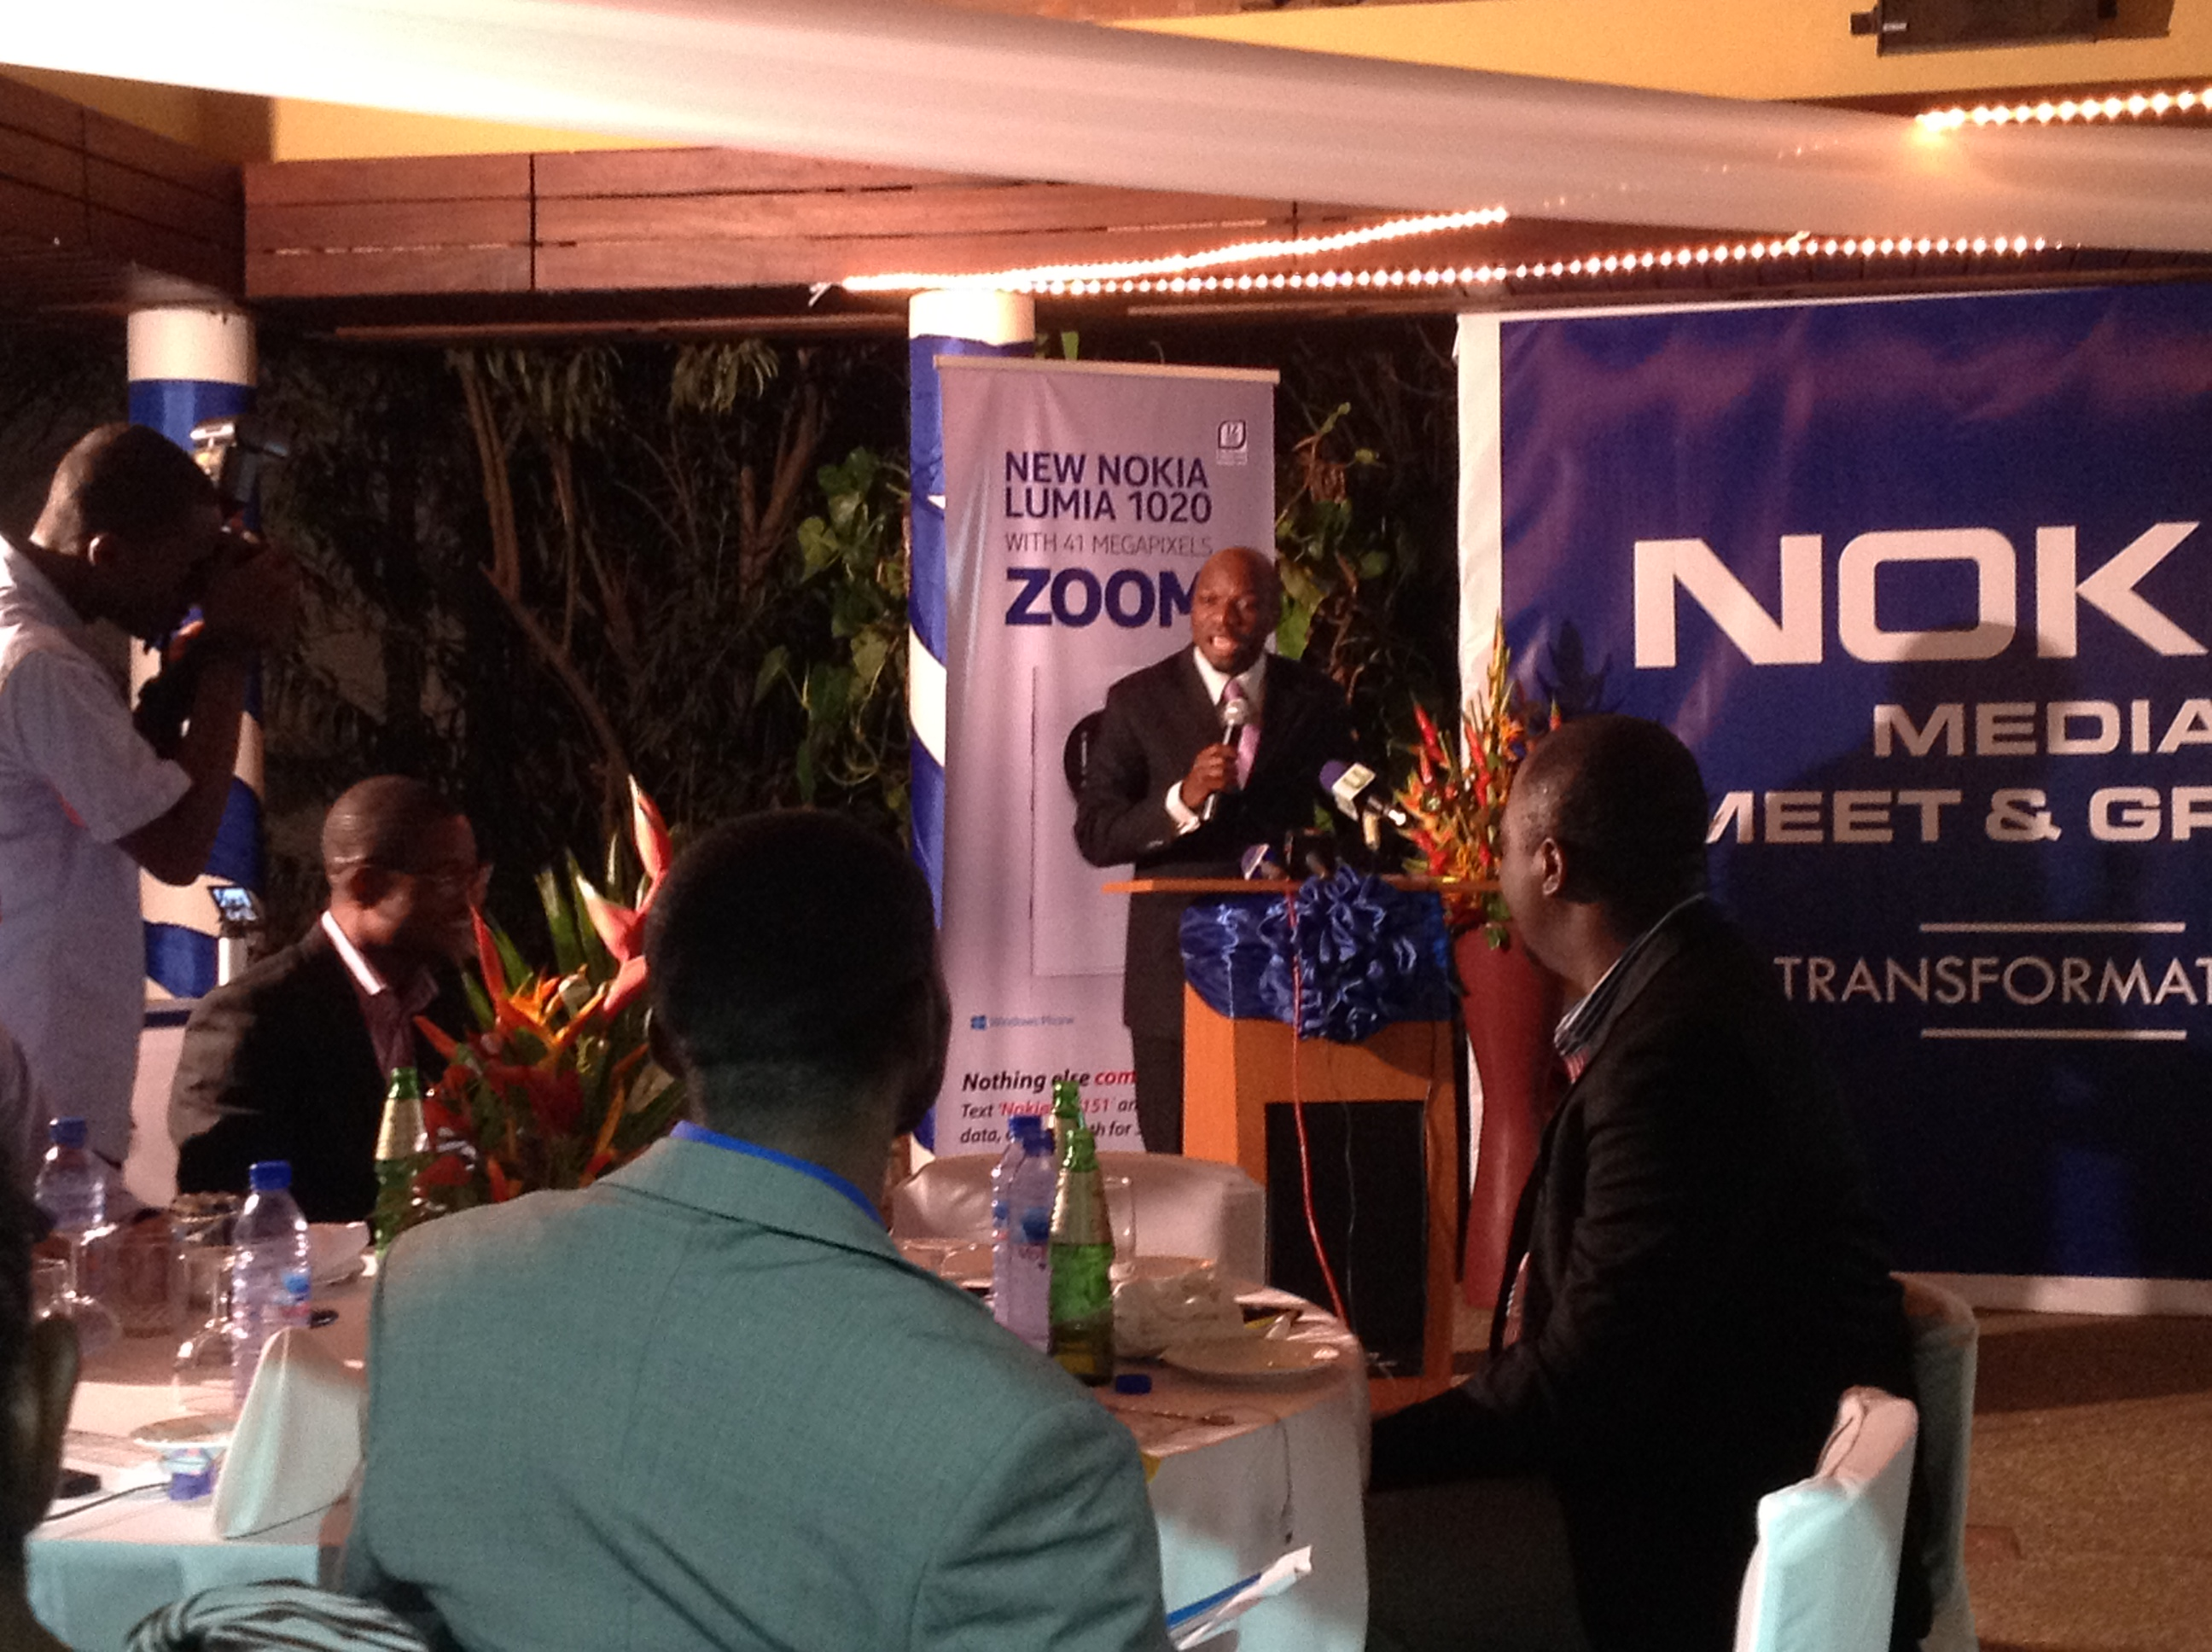 Nokia promises to take over the smart phone market in Ghana